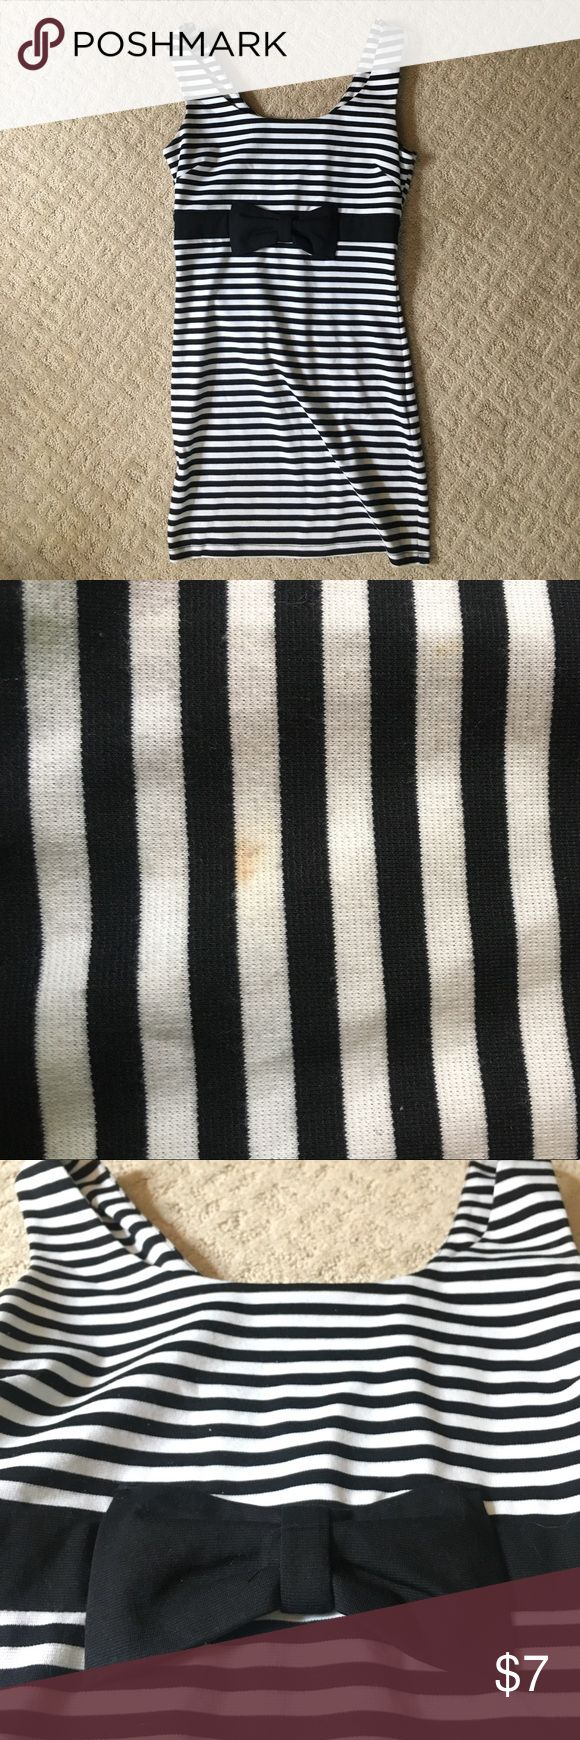 Striped Bodycon Dress with Bow Item includes zipper in the back and is stretchy and comfortable. No rips or tears, from a smoke free home. One small stain shown in the second picture. Forever 21 Dresses Mini